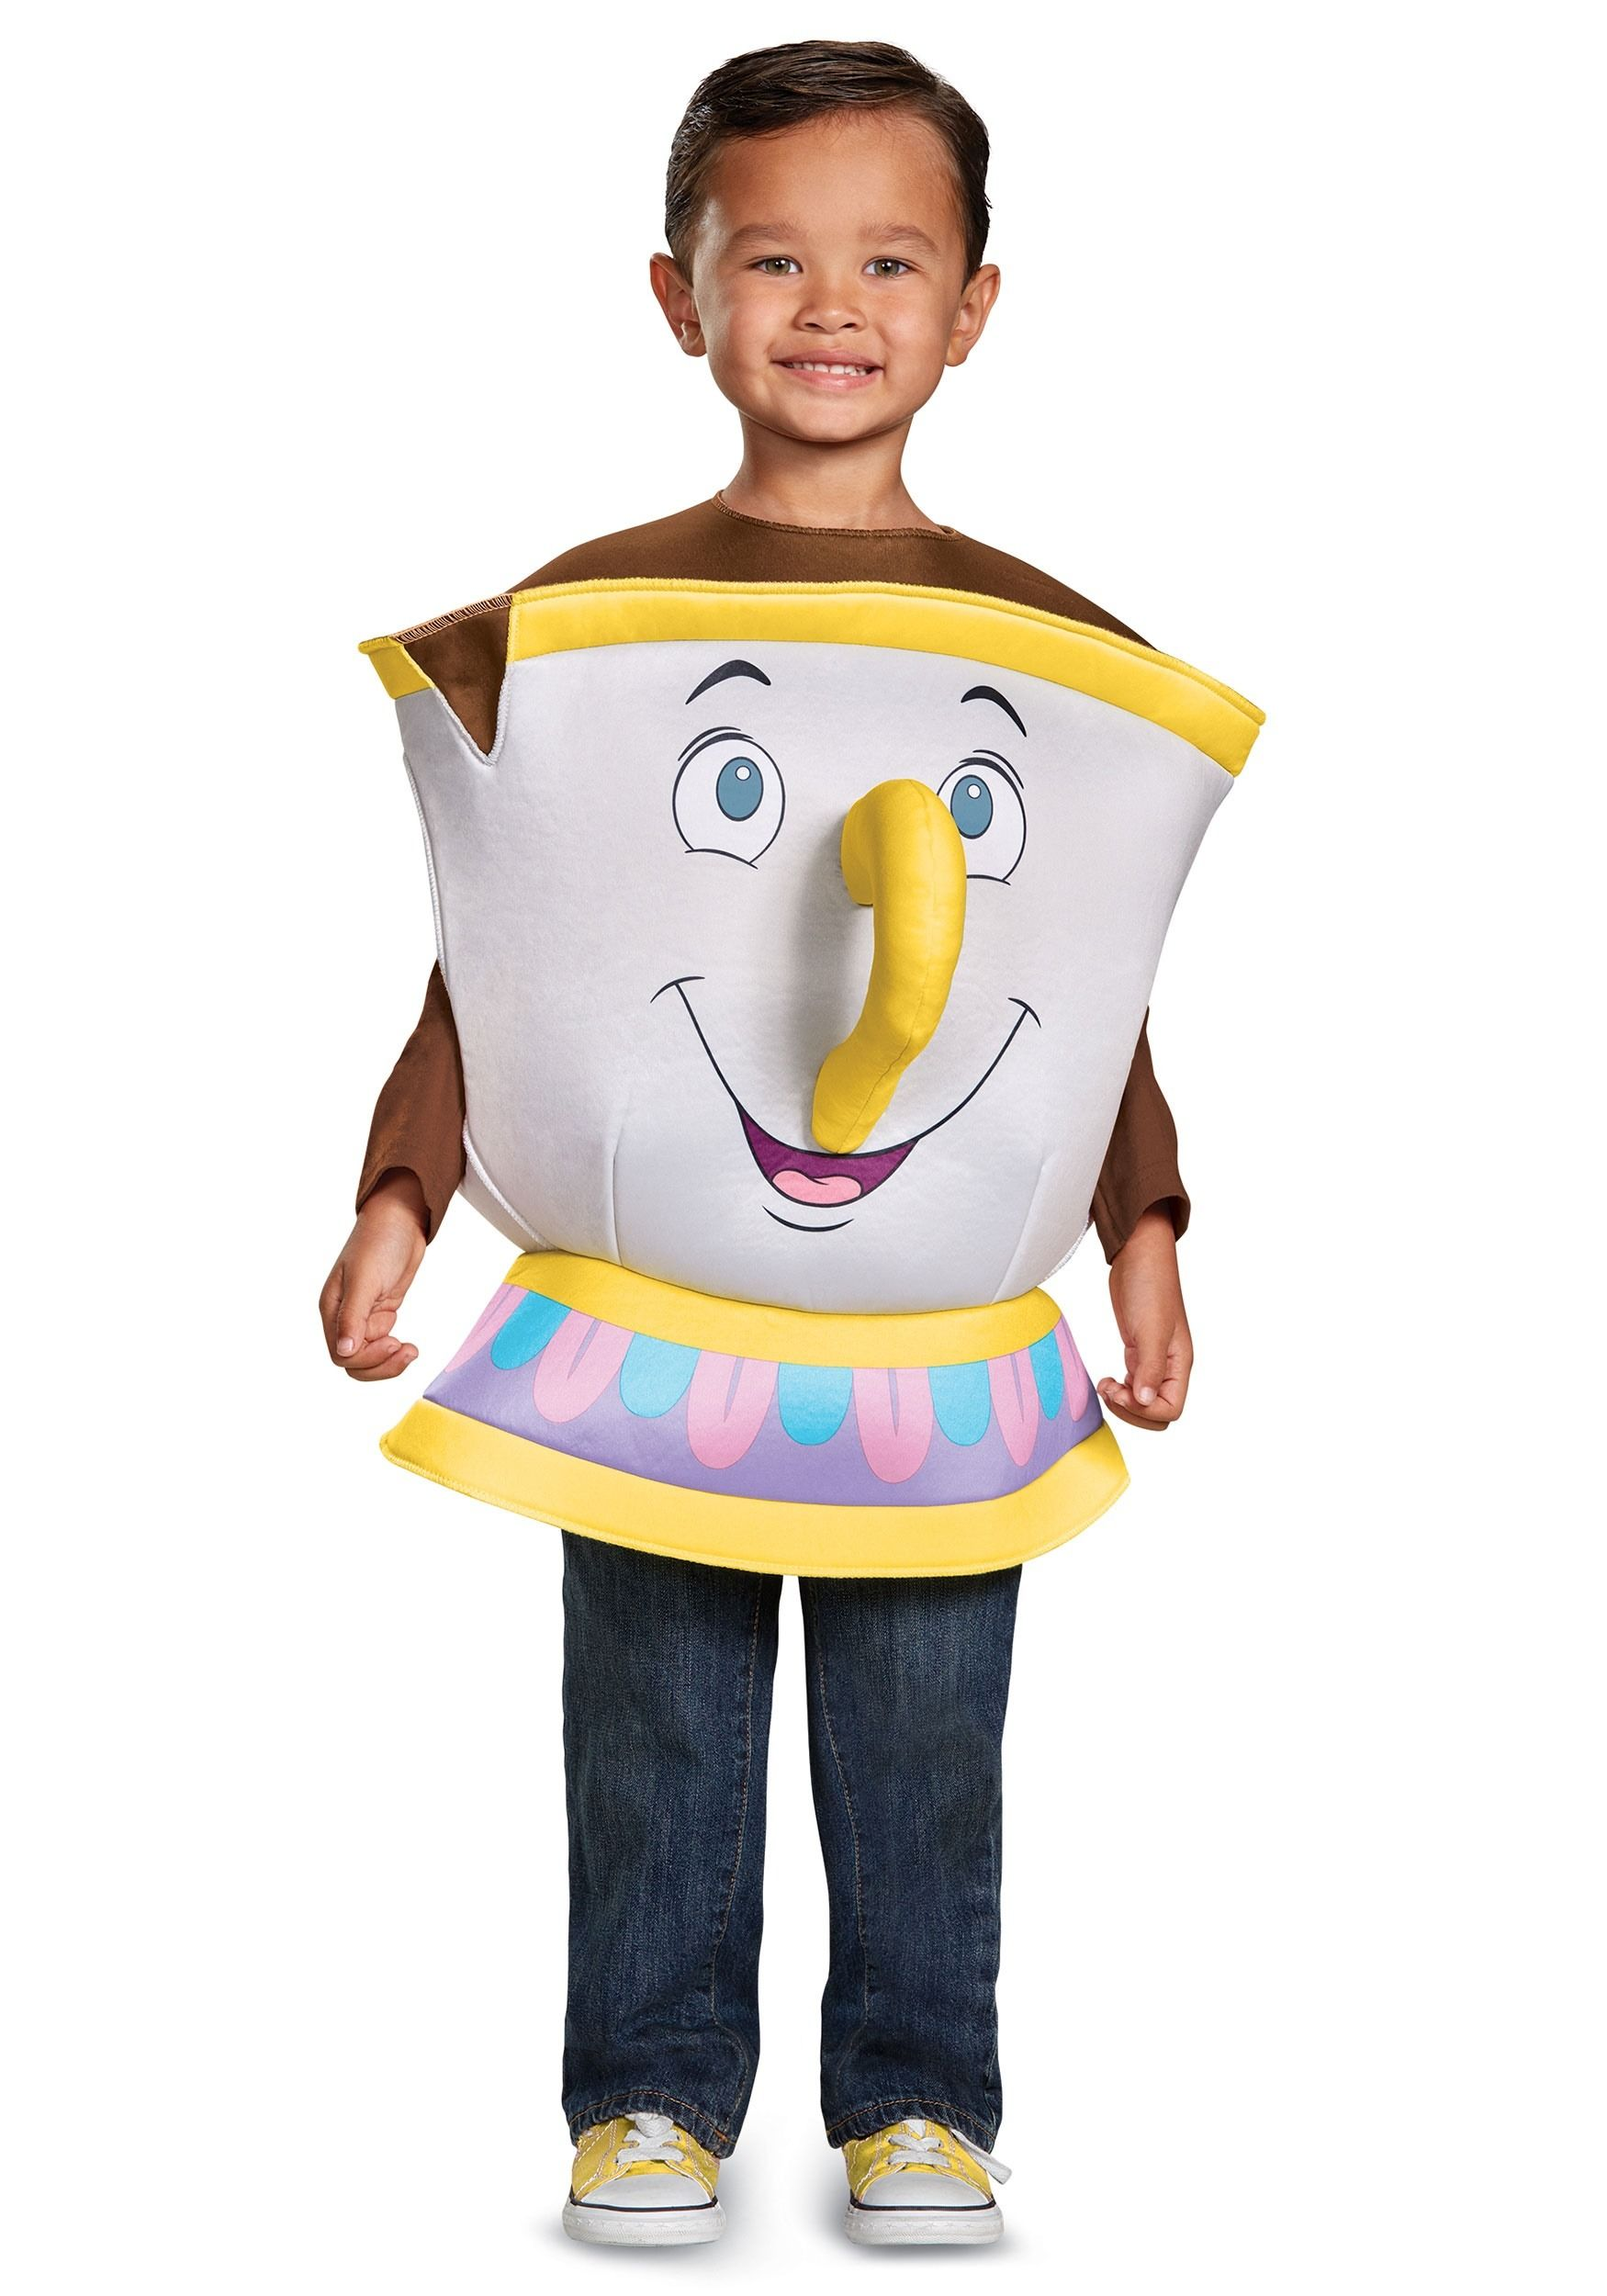 asteroid costume for kids - HD1750×2500